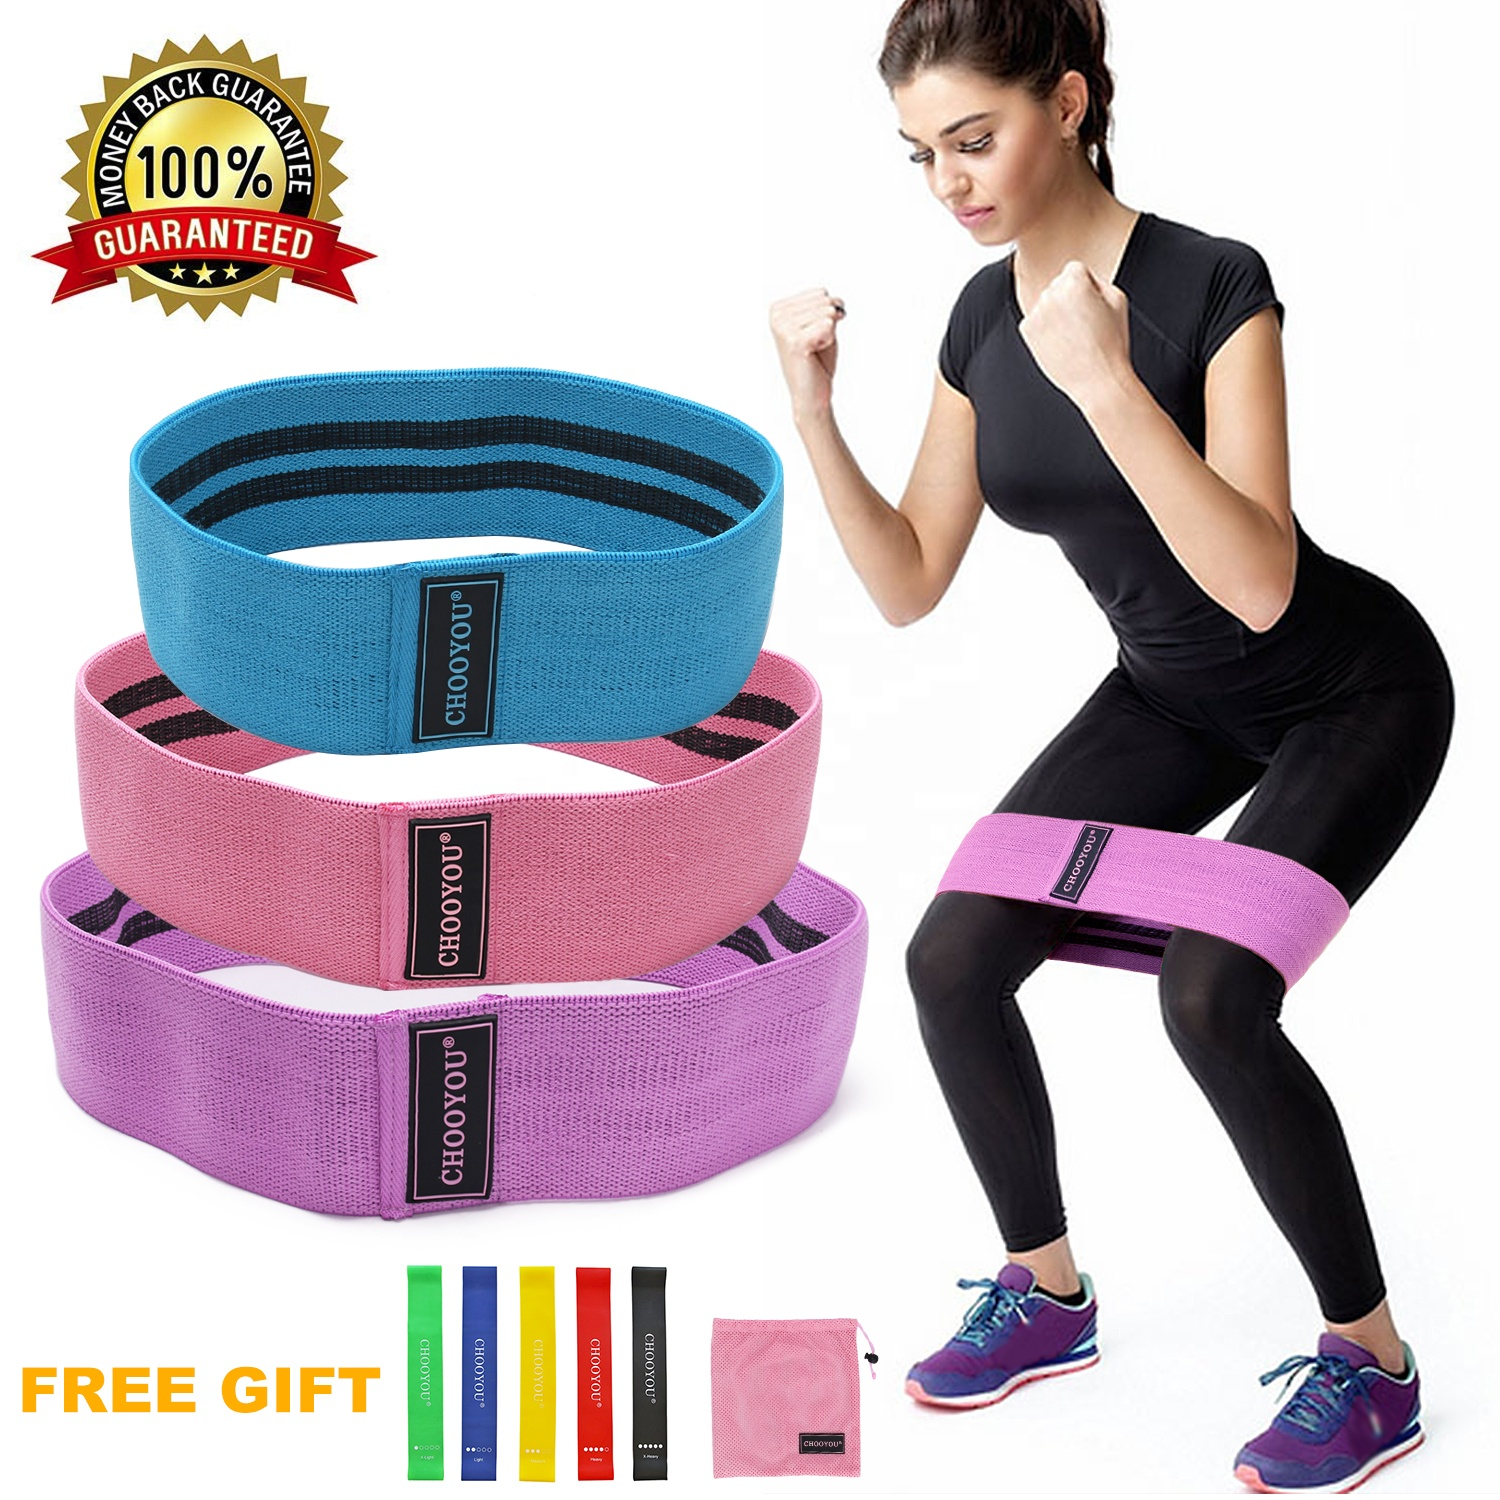 fabric hip circle <strong>resistance</strong> bands for bodybuilding